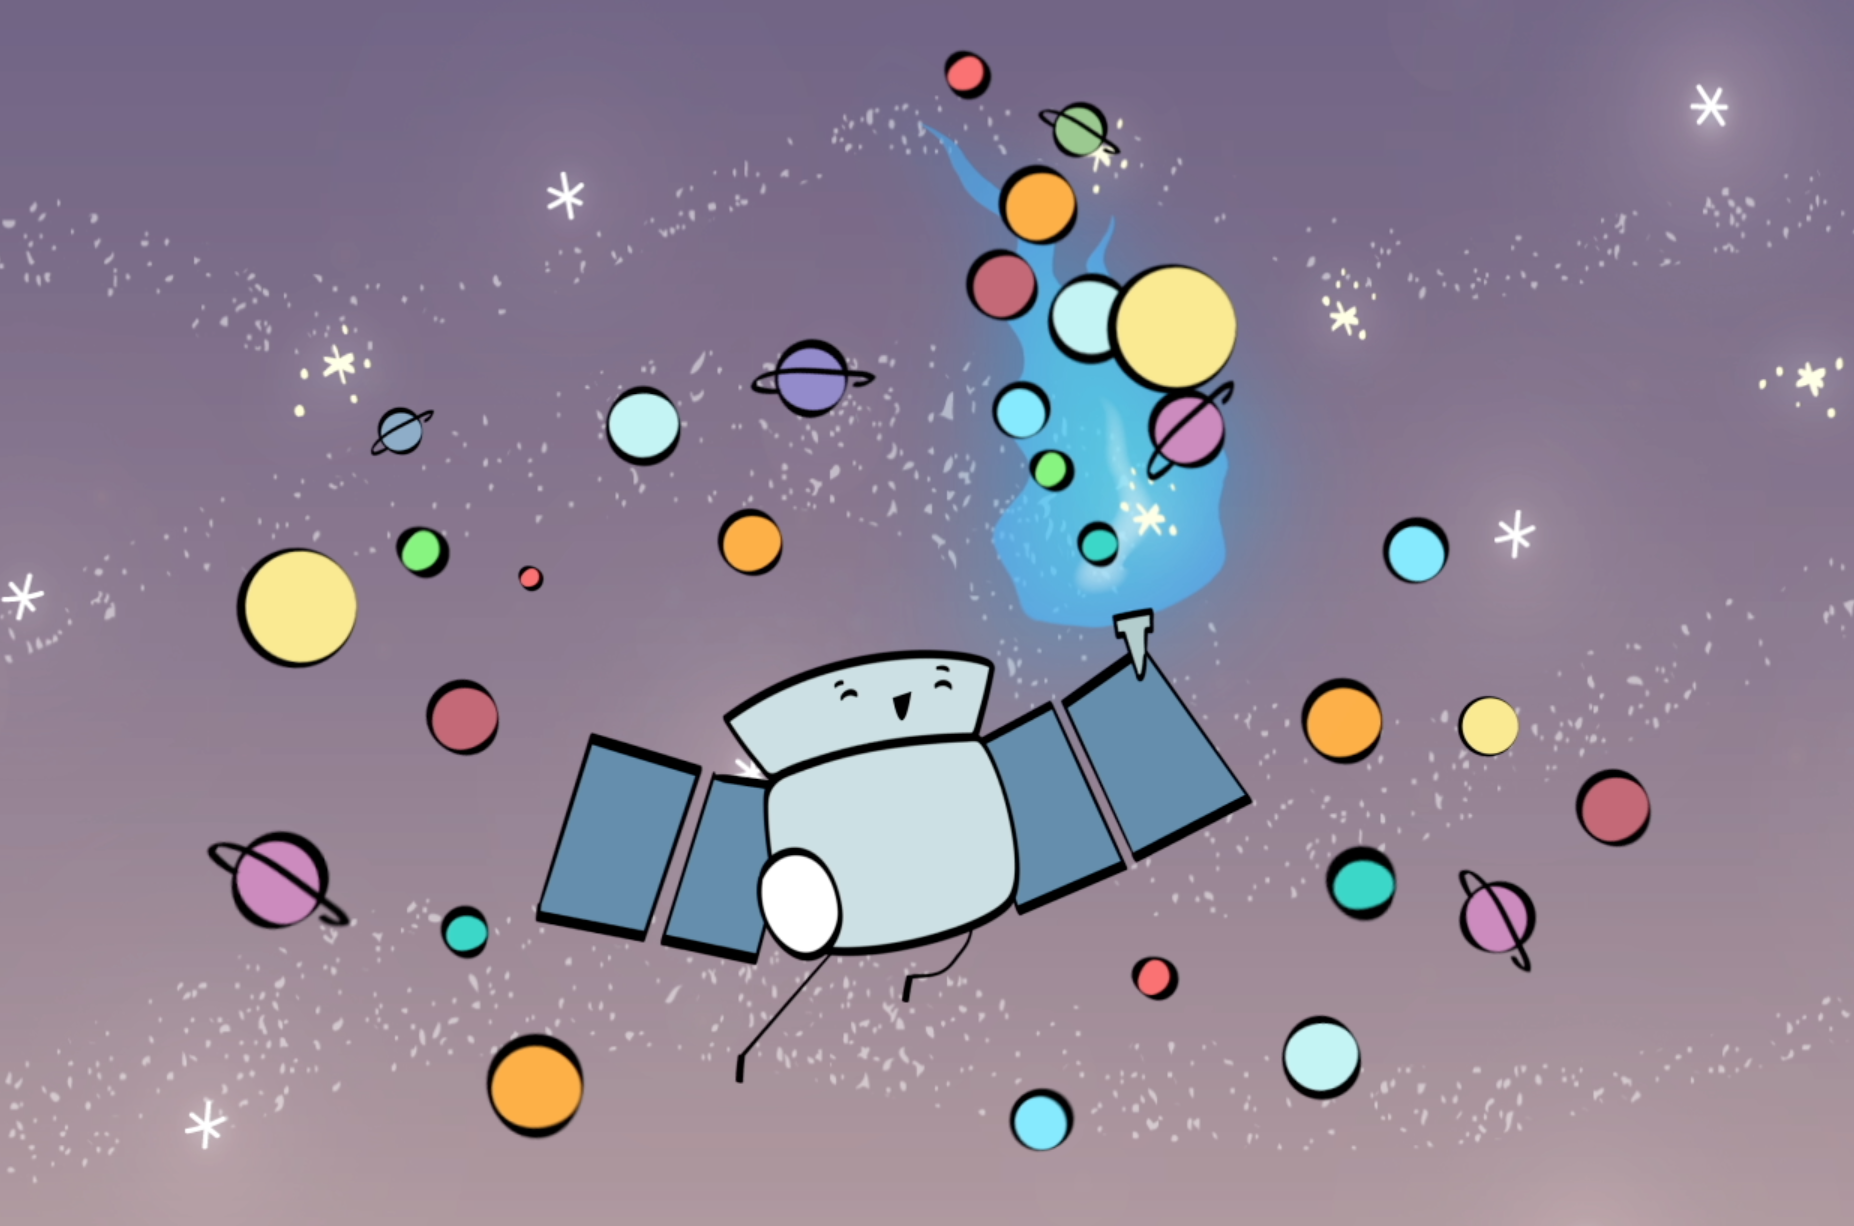 Cartoon of a smiling TESS satellite carrying a torch and surrounded by a cloud of exoplanets